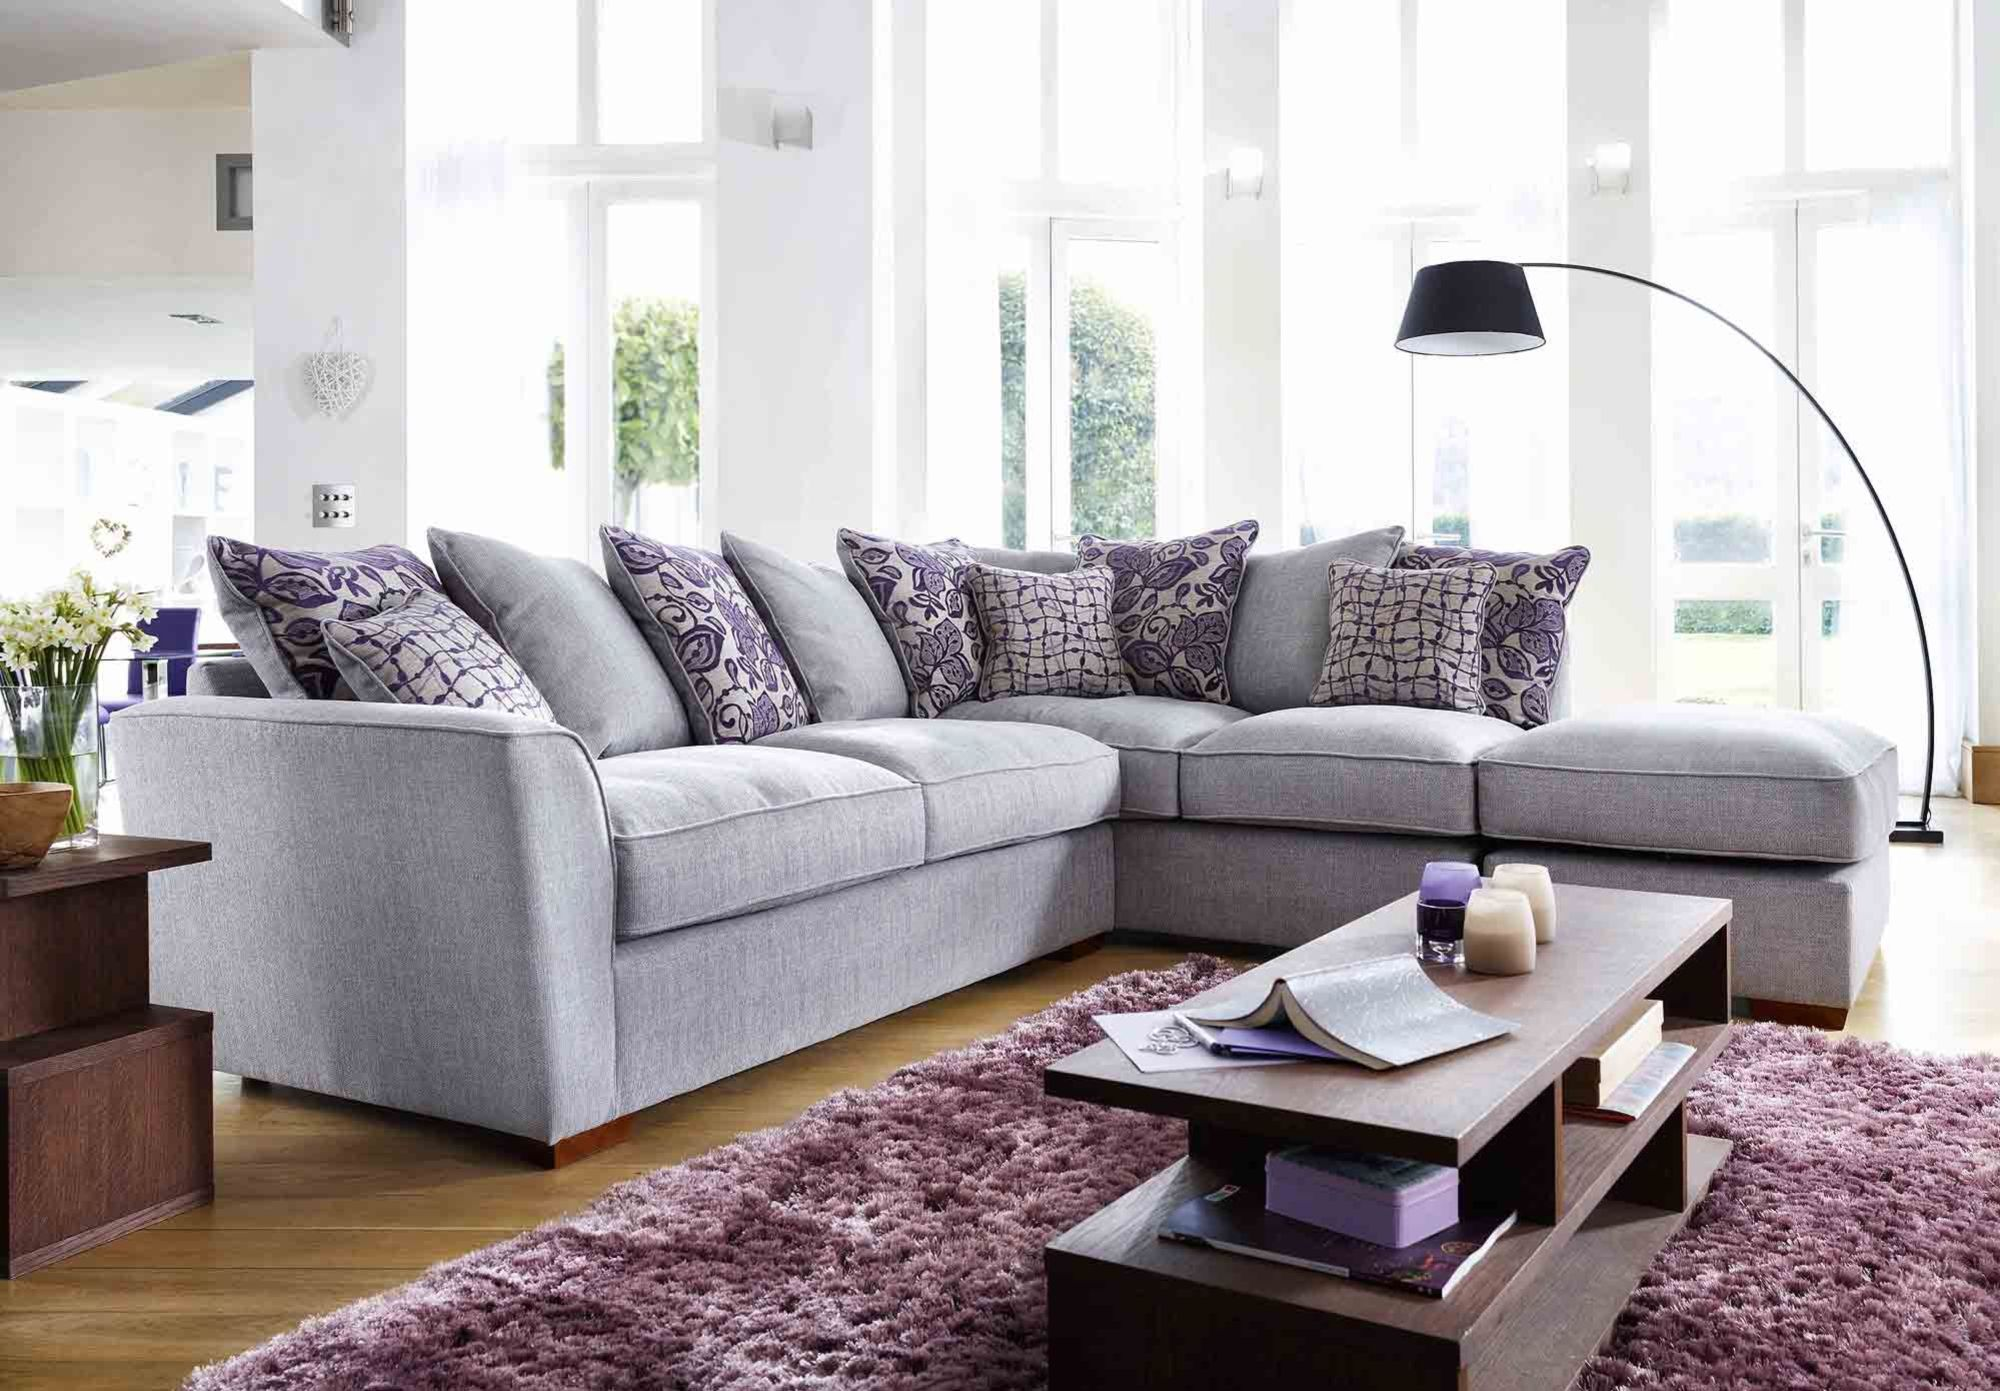 Fable lhf scatter back corner sofa at furniture village for Furniture village sofa